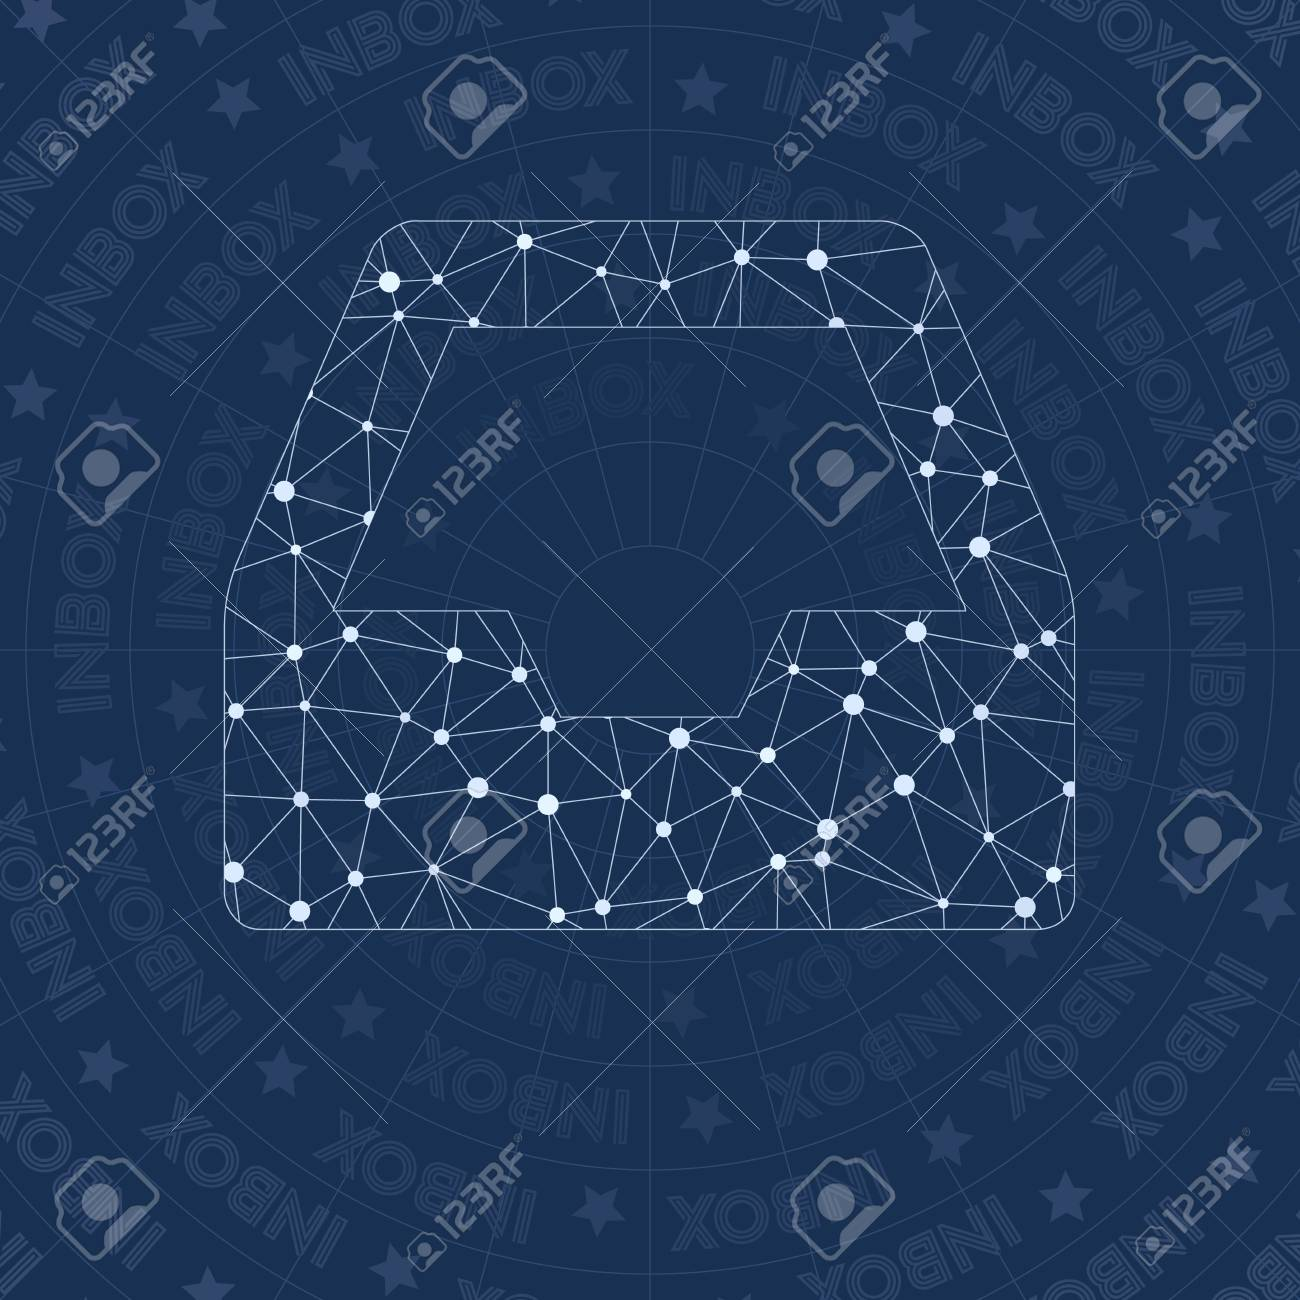 Constellation Network Diagram Trusted Wiring Diagrams Vox Guitar Inbox Symbol Alluring Style Great